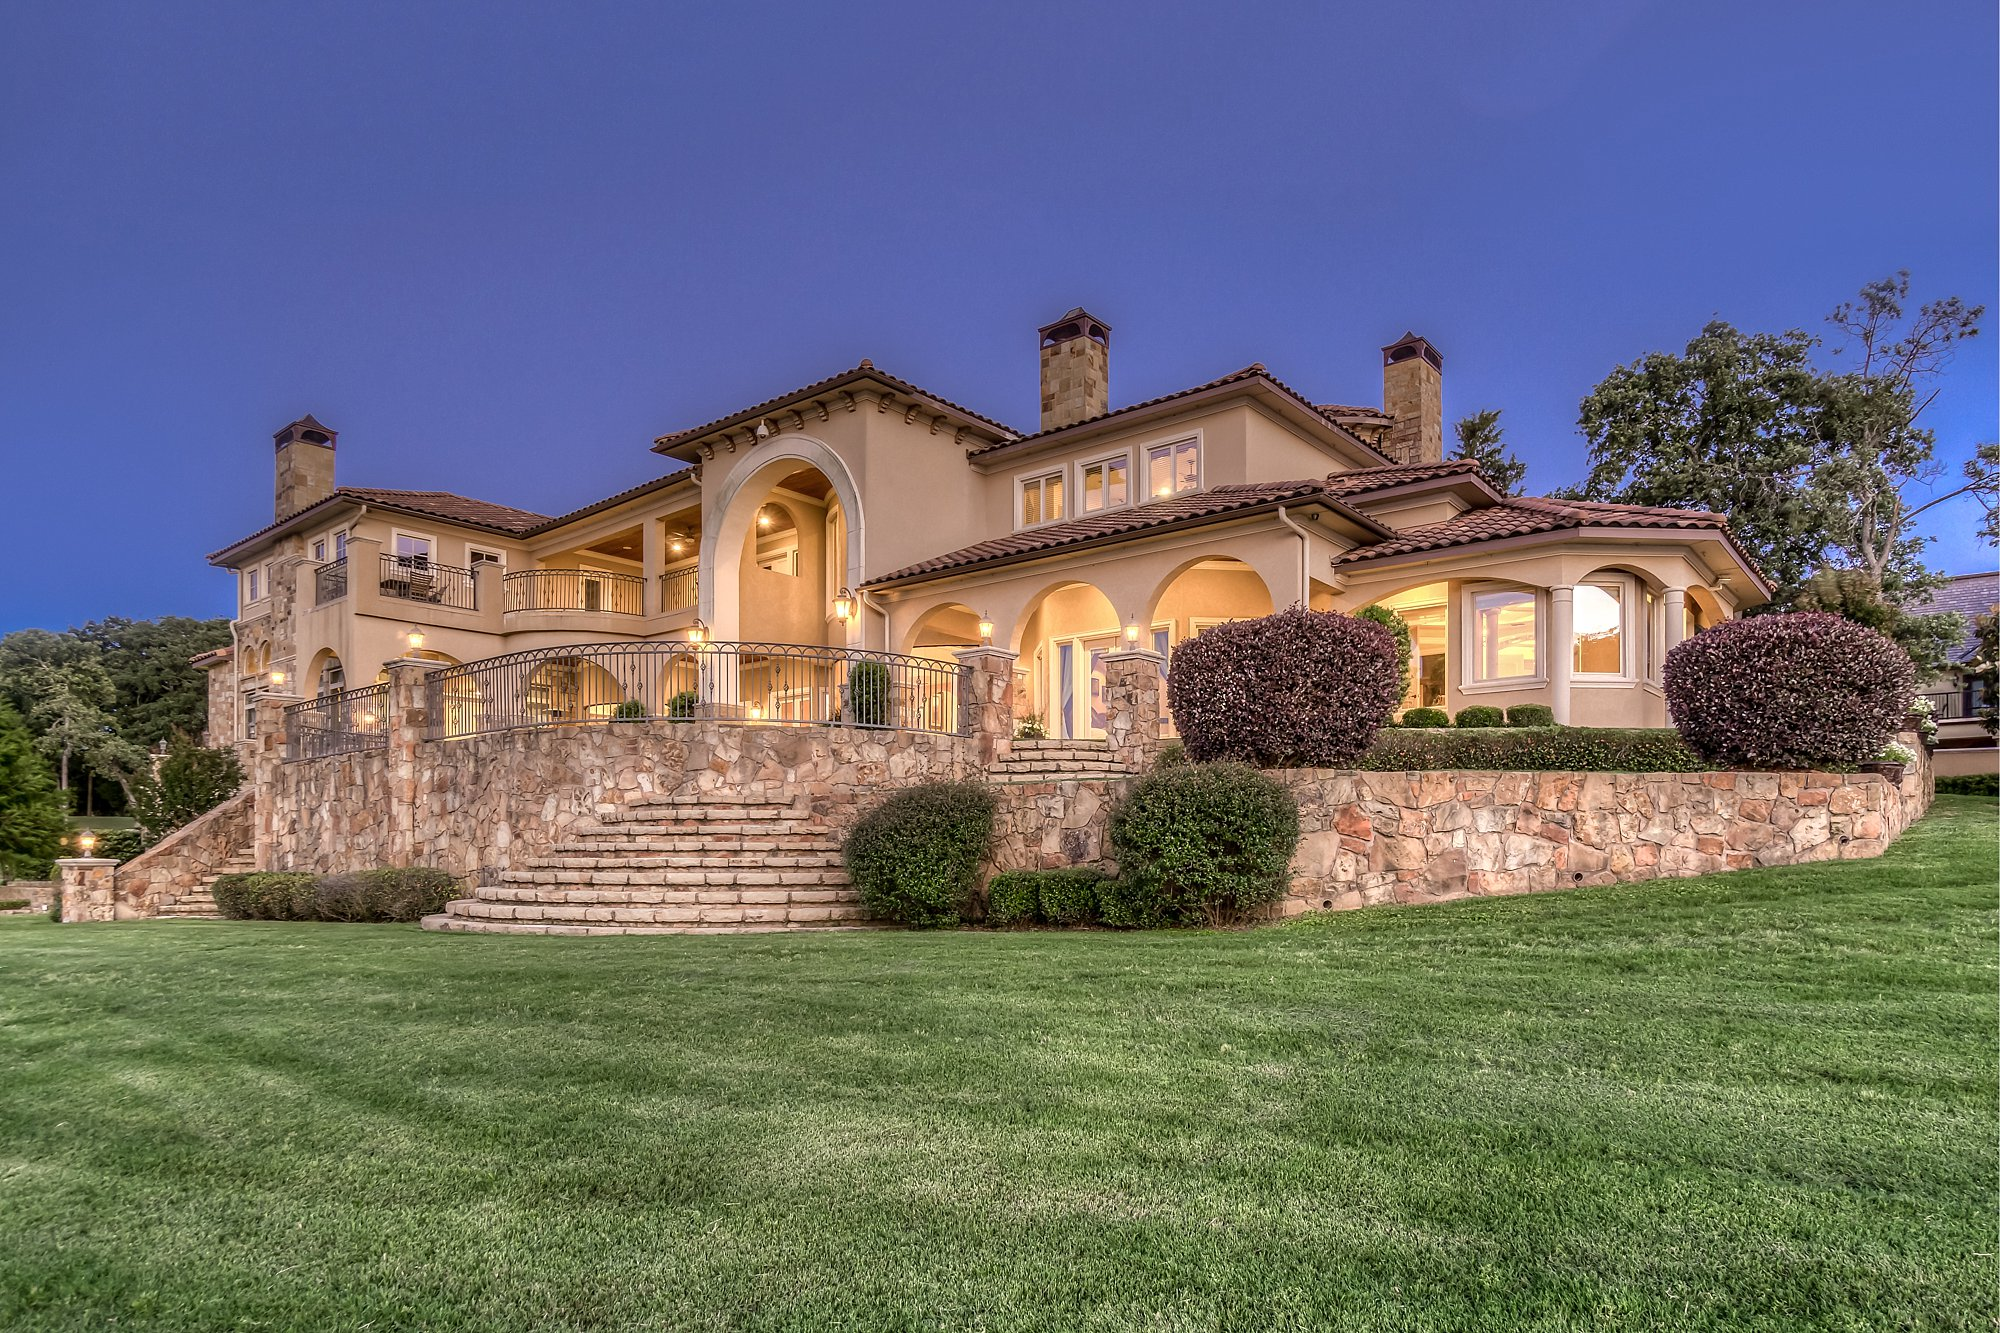 Twilight Photography - 4425 Cascades Shoreline Drive, Tyler, TX - Matt Wood - Briggs Freeman Sotheby's International Realty